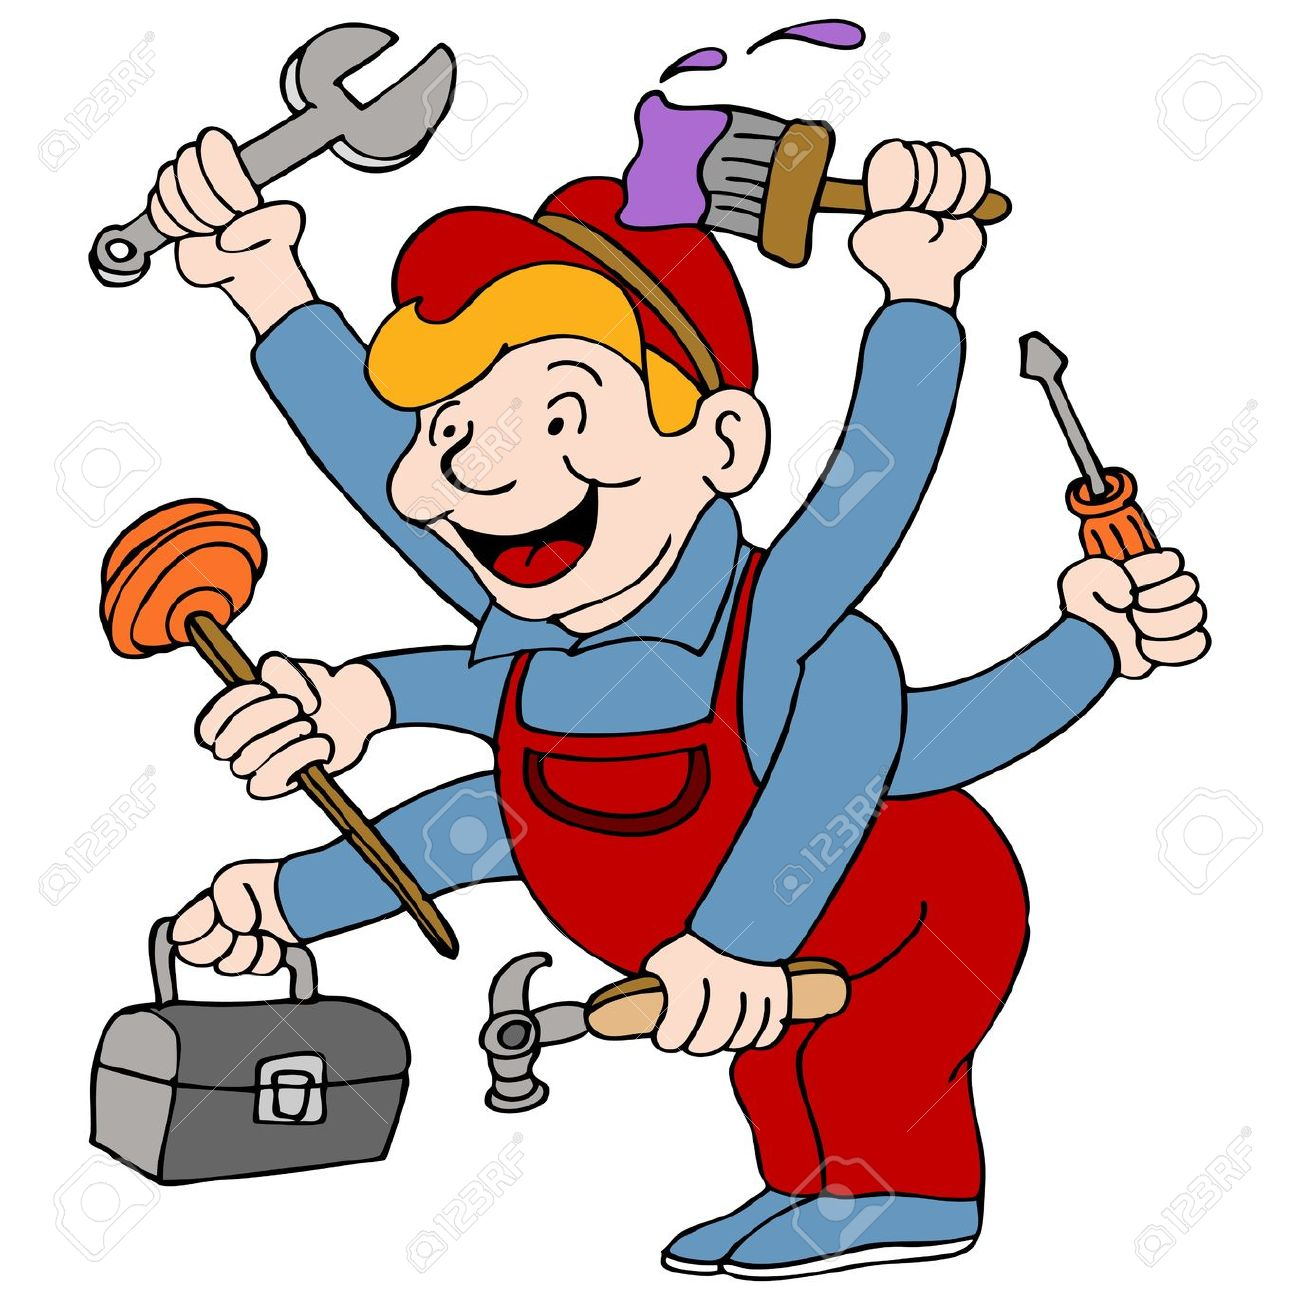 An Image Of A Handyman Who Is A Jack Of All Trades. Royalty Free.